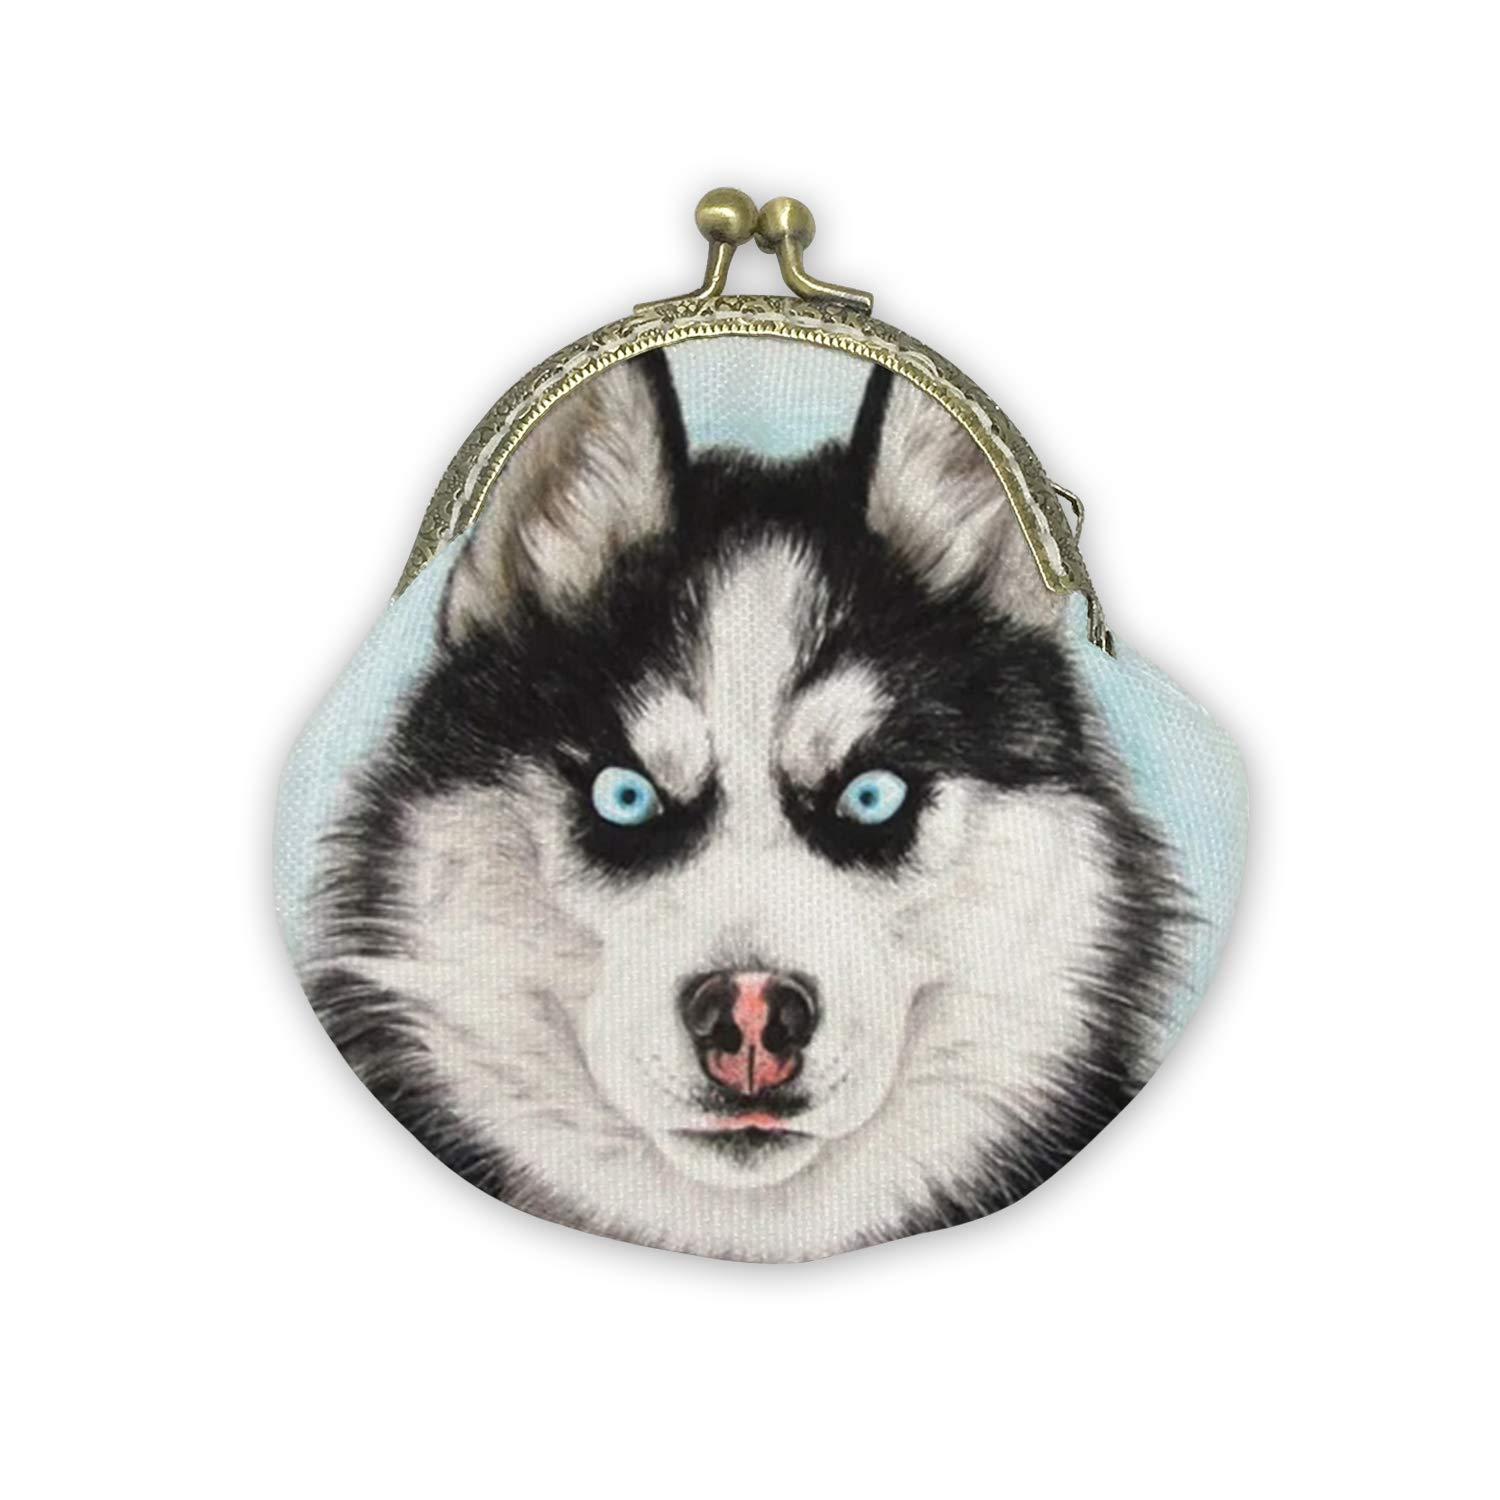 Fierce Husky Mouth Gold Bag Canvas Coin Purse Cash Bag Small Purse Wallets Mini Money Bag Change Pouch Key Holder Double Sides Printing